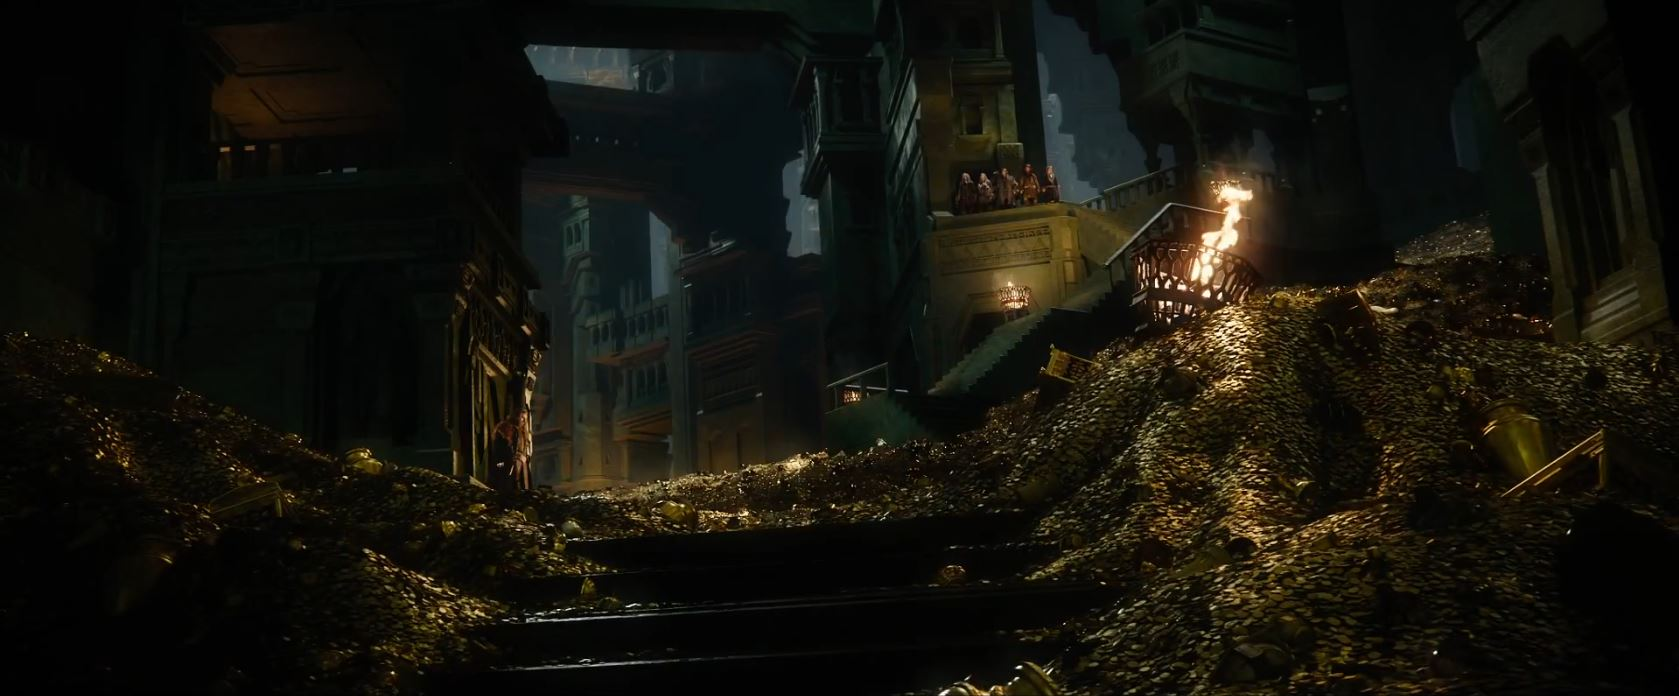 The Hobbit The Battle of the Five Armies Trailer - Erebor riches